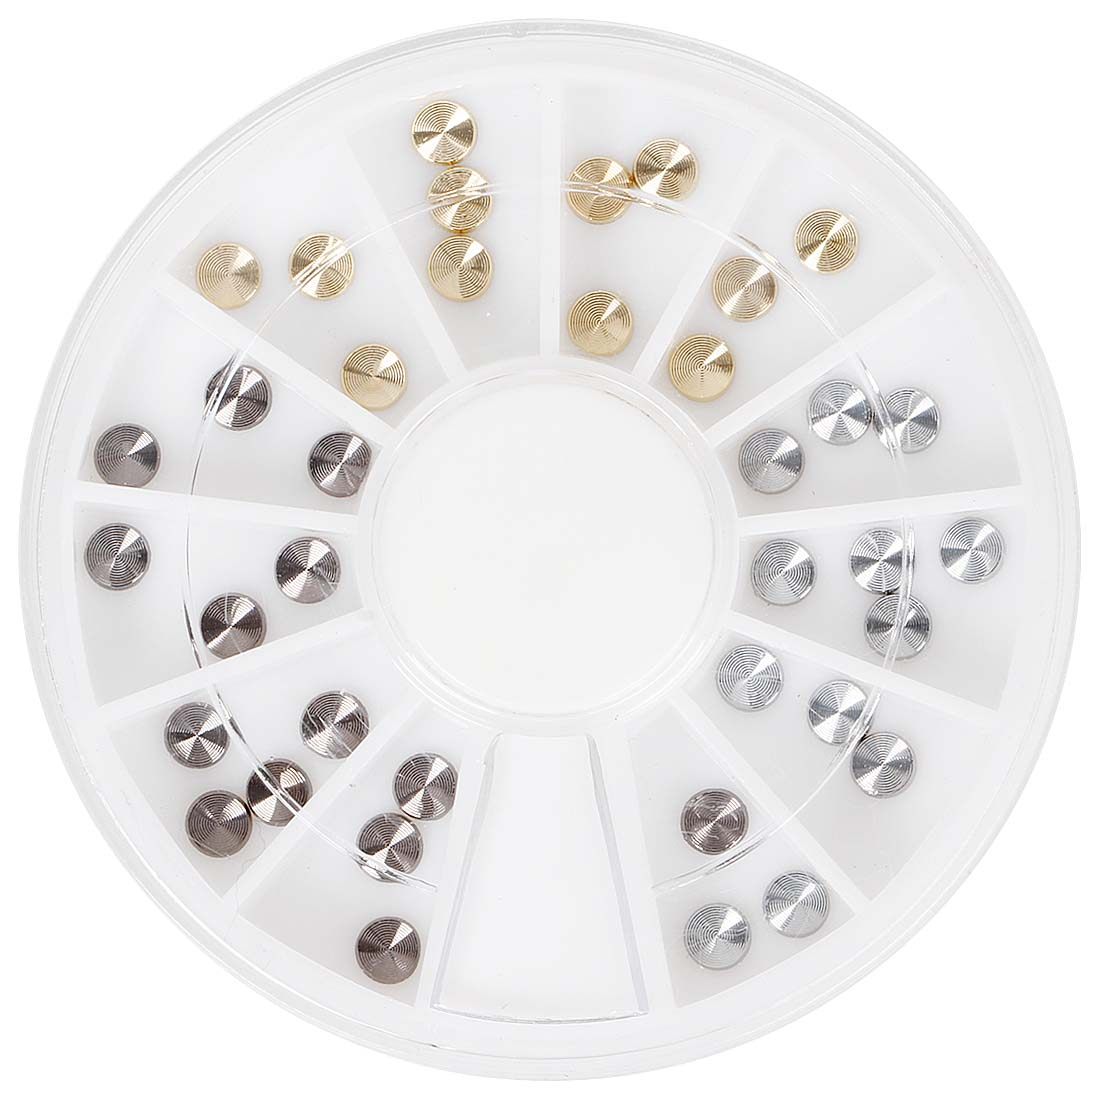 BMC Ornate 36pc 4mm Multicolored Metal Embossed Nail Polish Art Accessory Round Disc Stud Flatback